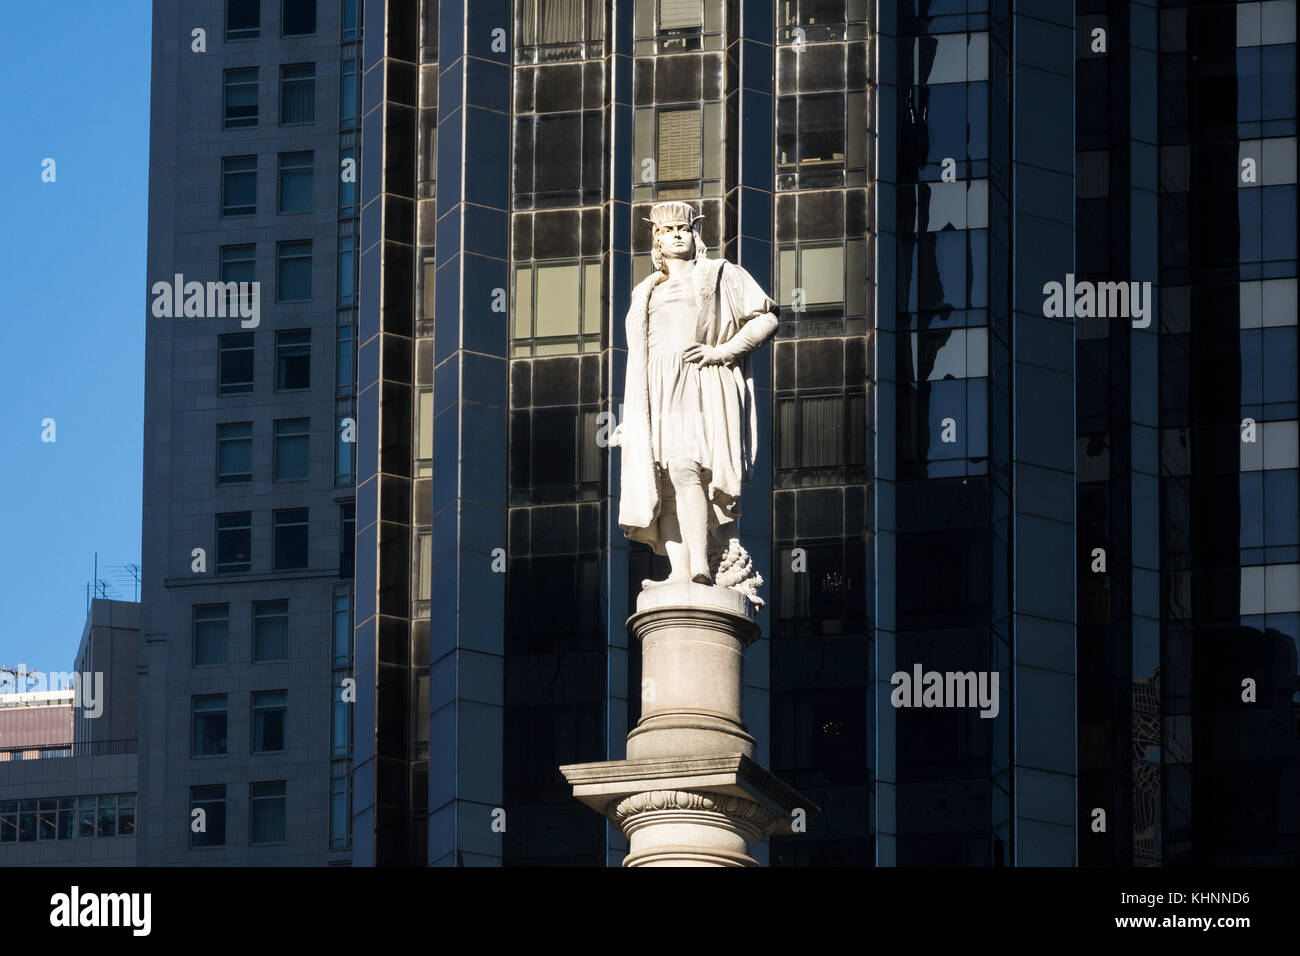 The controversial Christopher Columbus statue in Columbus Circle in New York City - Stock Image